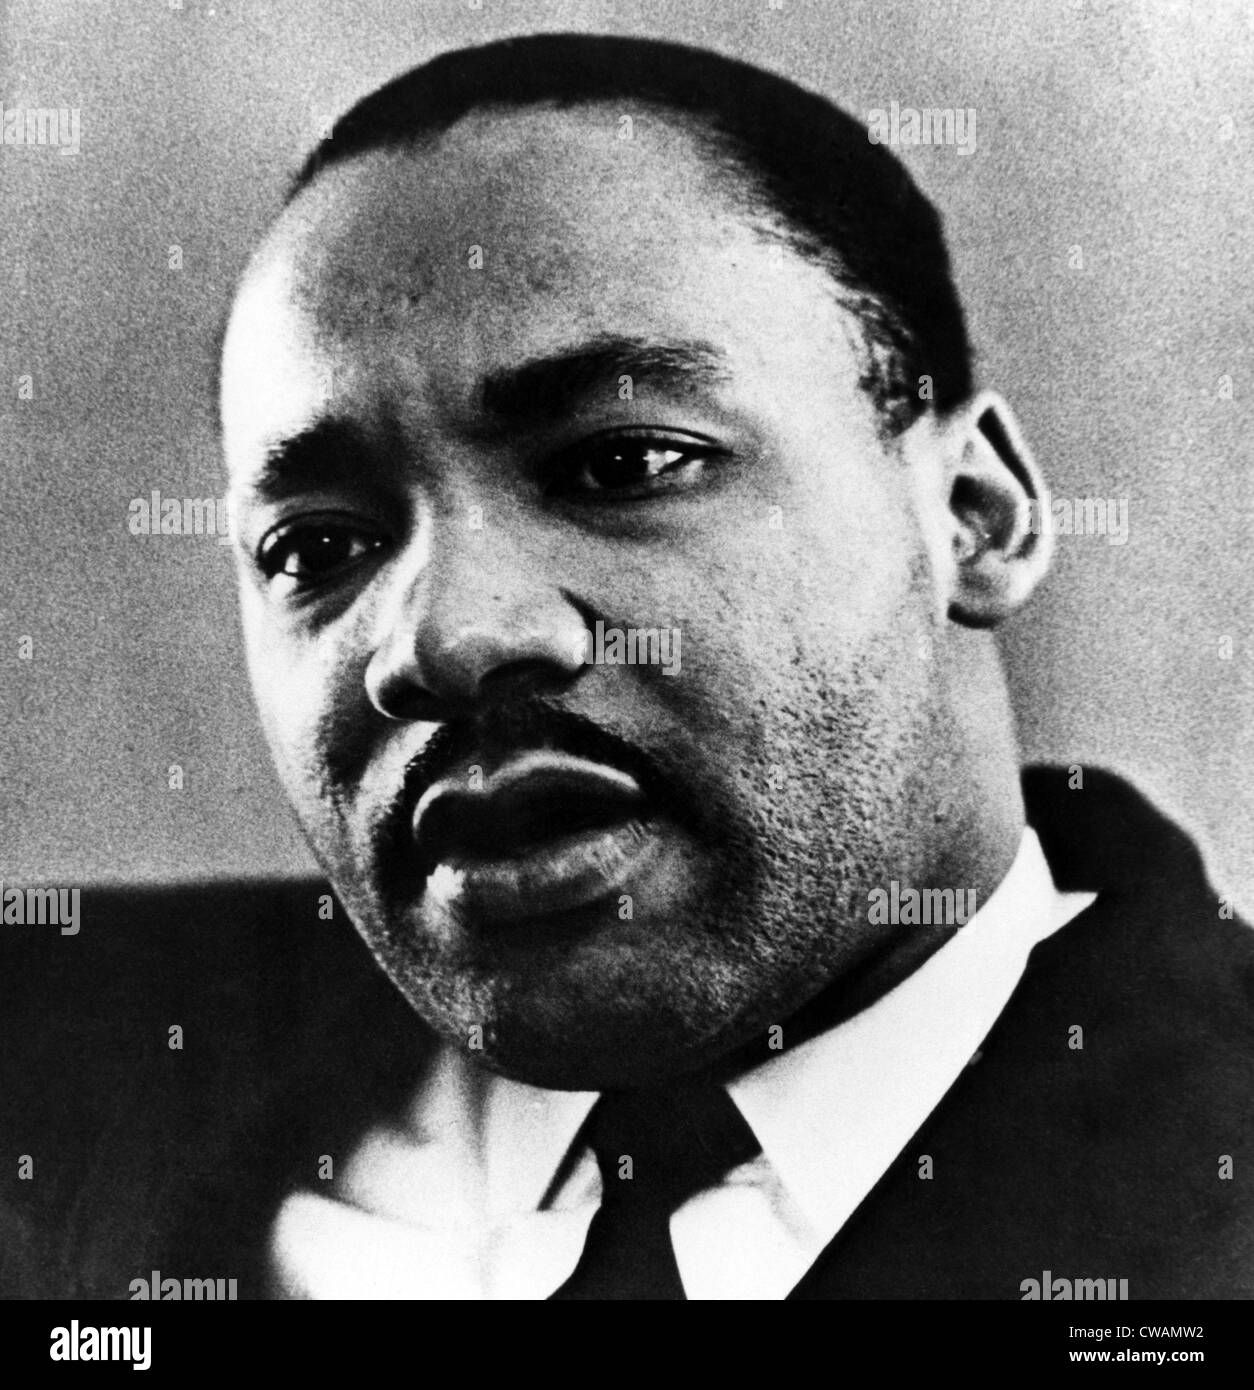 Dr Martin Luther King Jr African American